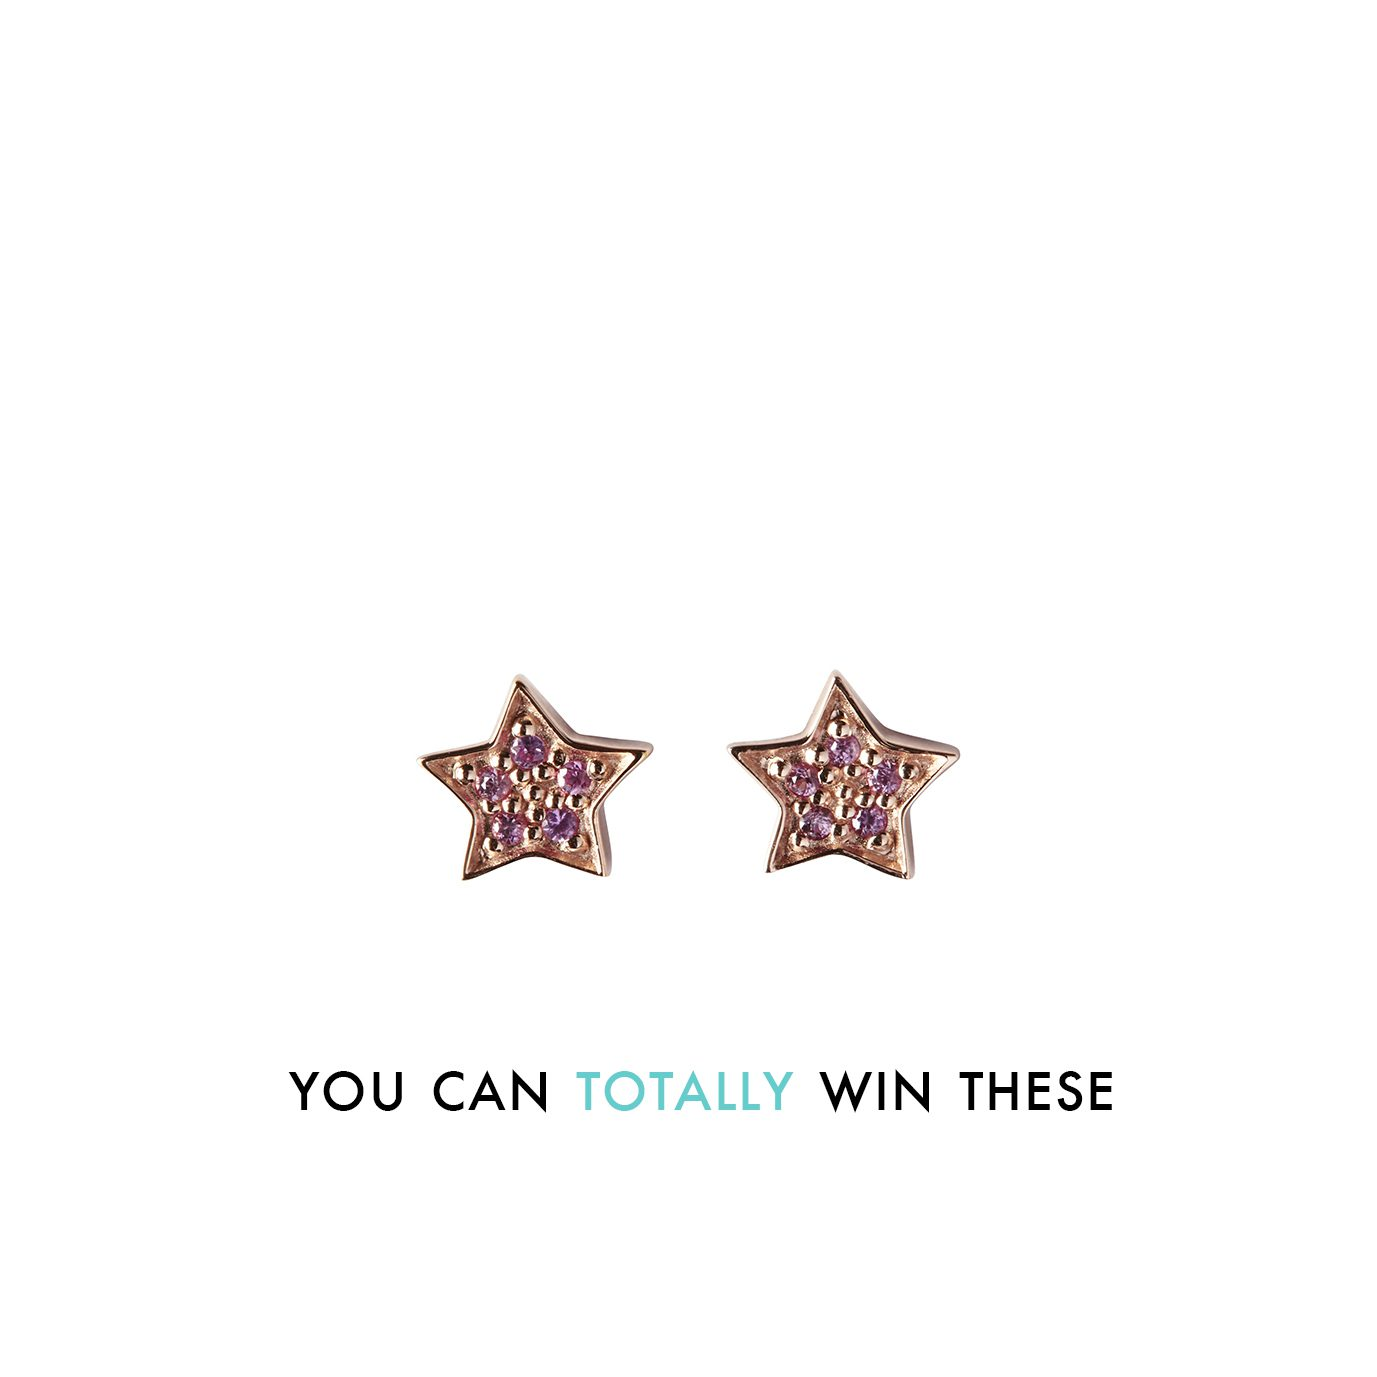 win-earrings